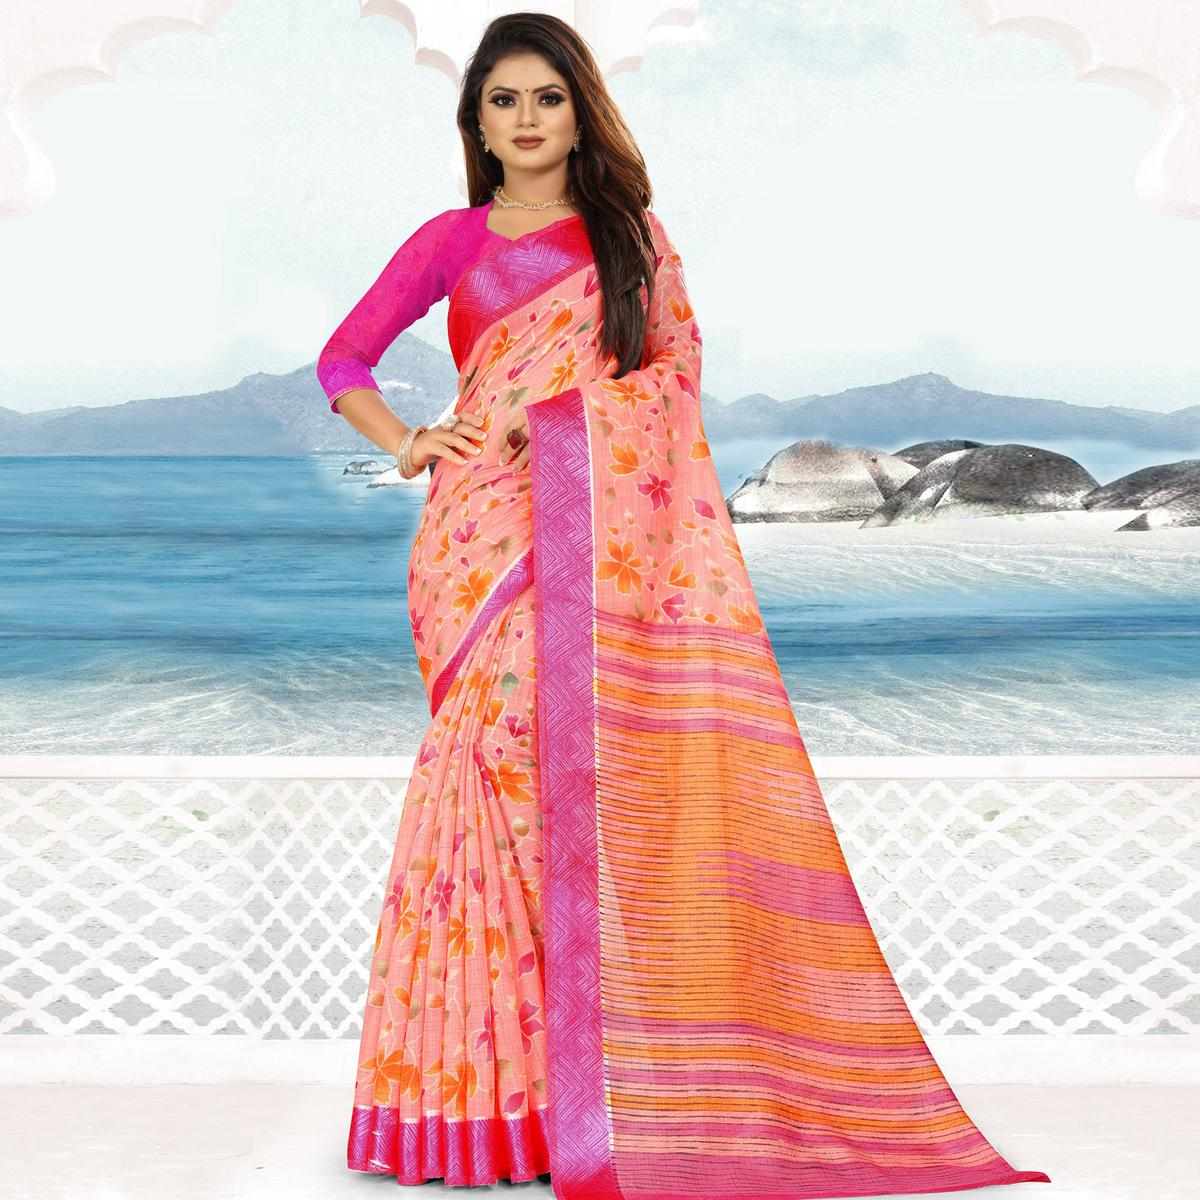 Alluring Pink Colored Casual Wear Floral Printed Linen Saree With Satin Patta Border